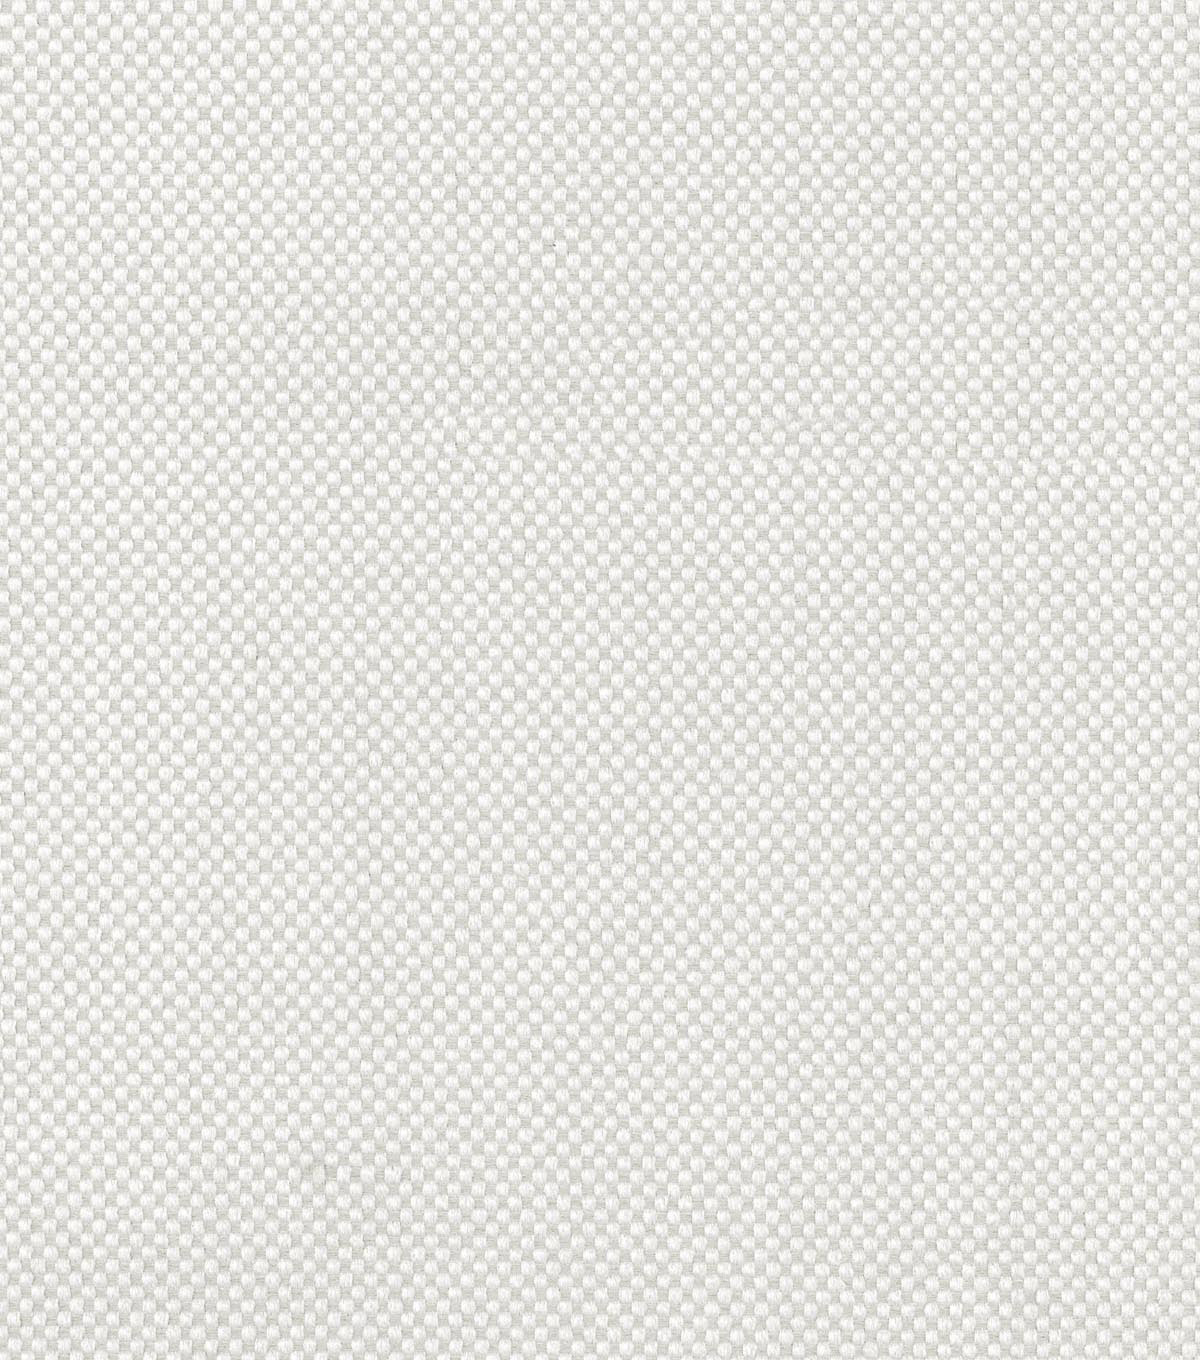 Home Decor 8\u0022x8\u0022 Swatch Fabric-Waverly SoHo Solid Fog